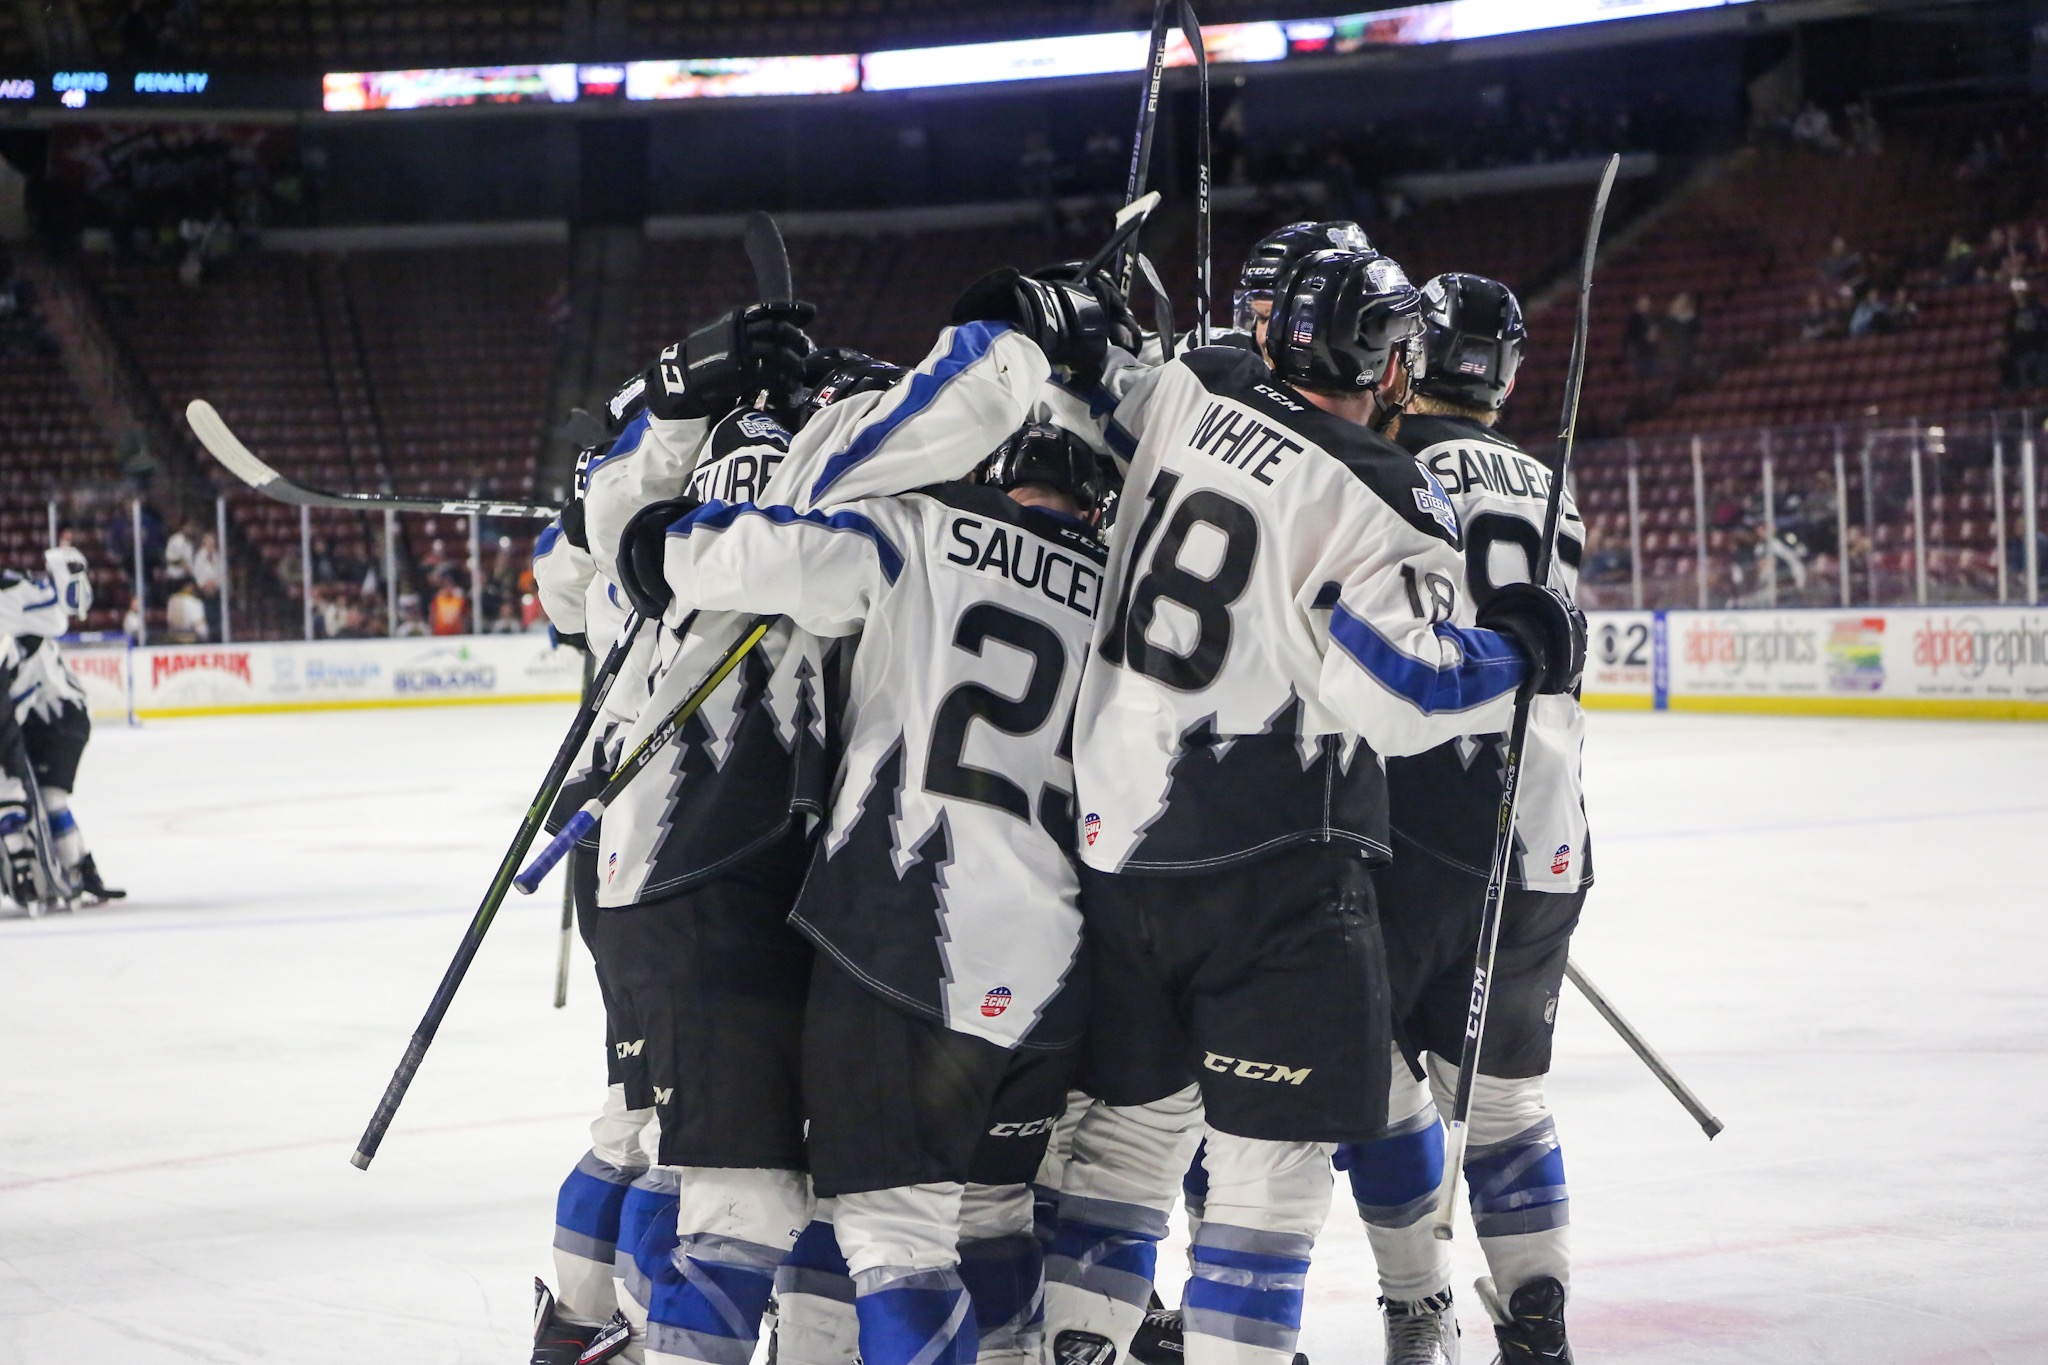 Idaho Steelheads hockey players huddle